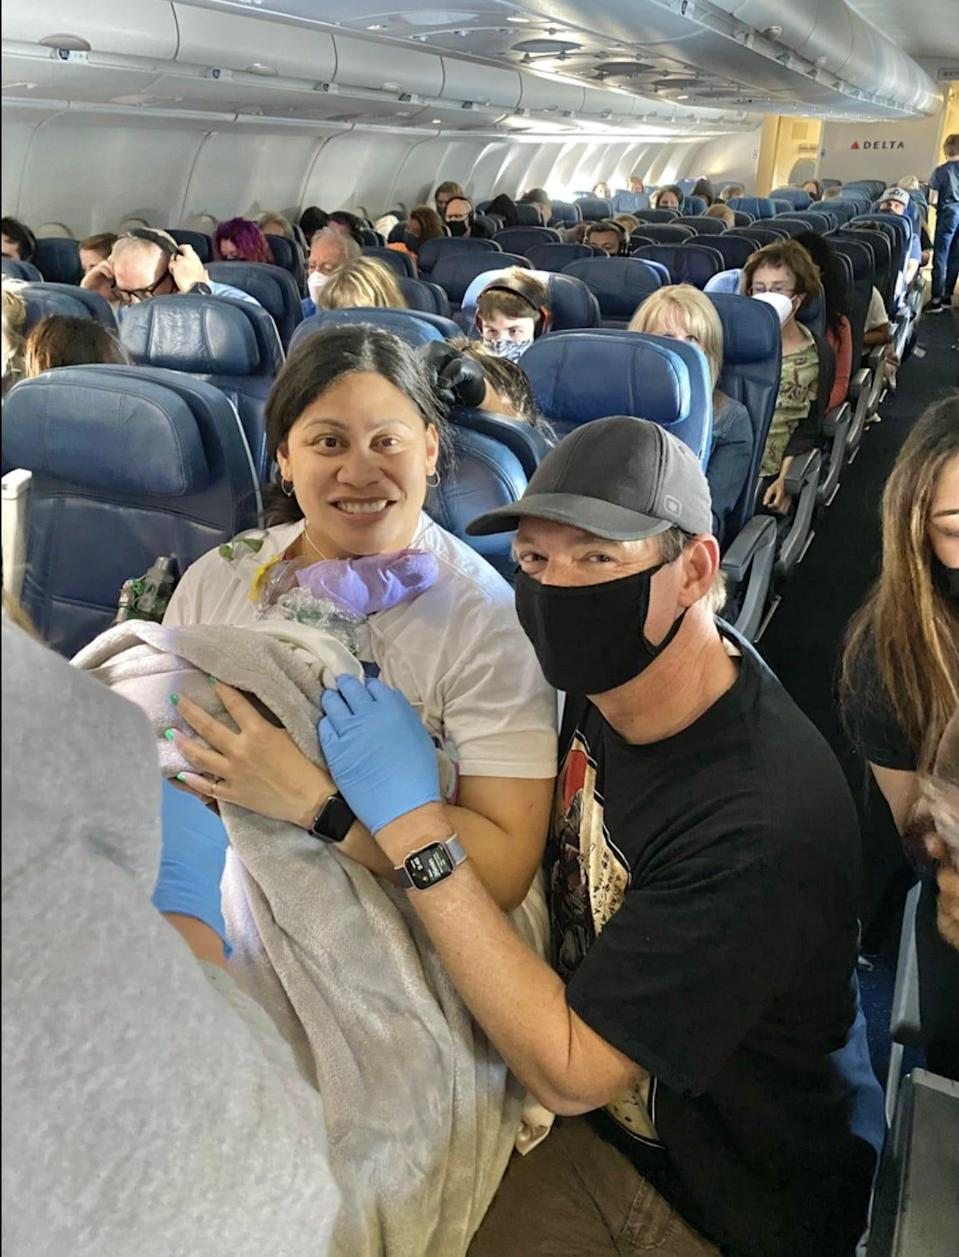 Lavinia Mounga and Dr. Dale Glenn posing after Mounga's gave birth aboard a Delta flight to Hawaii.